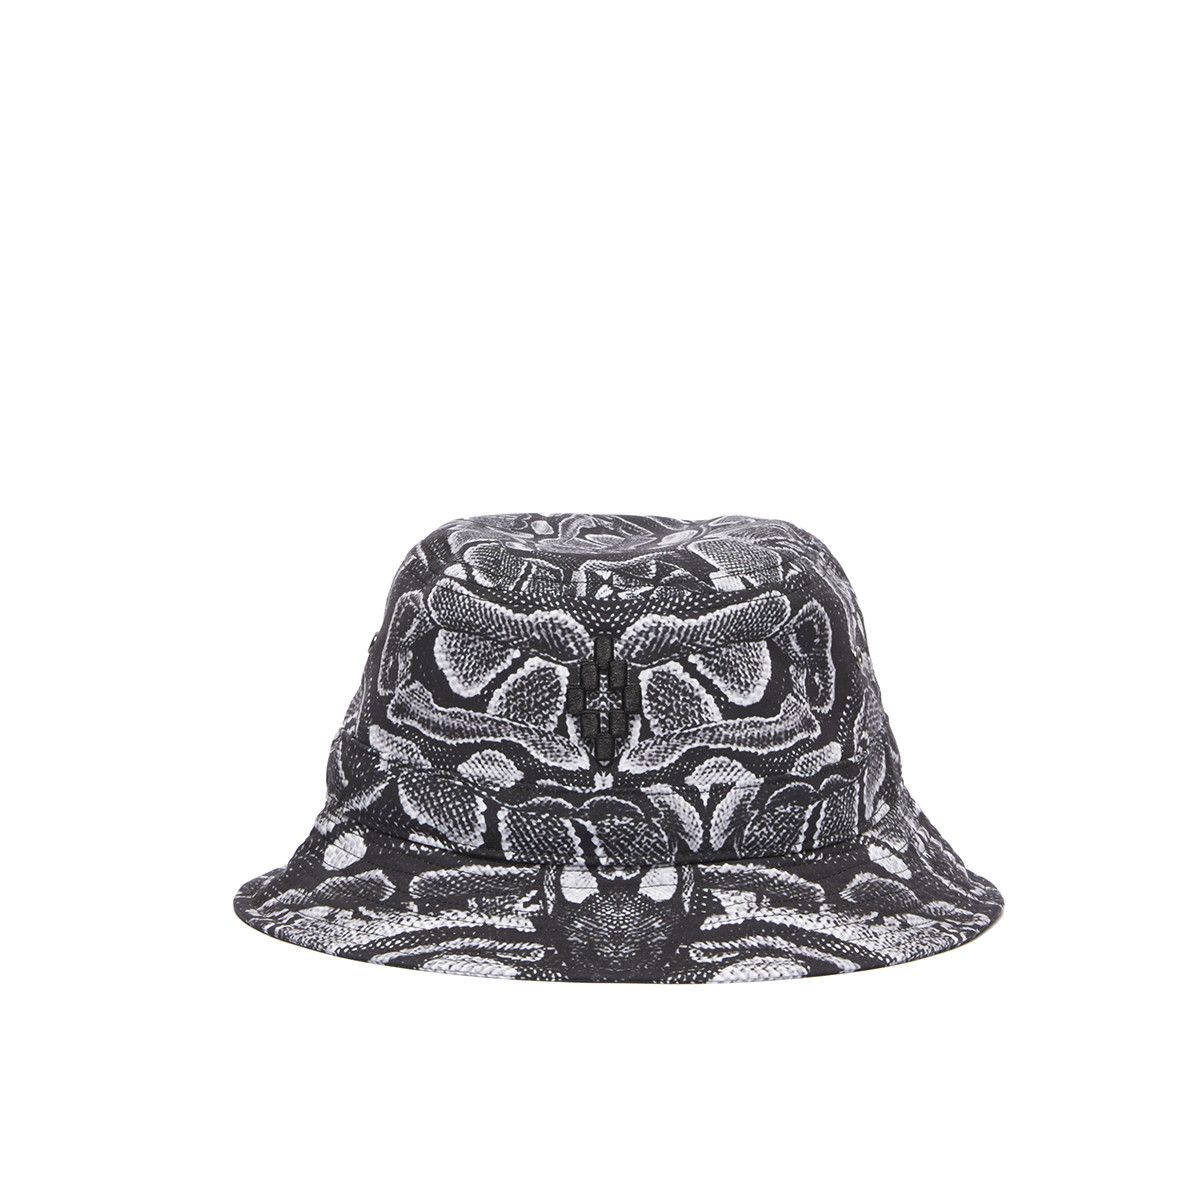 6cf571288a6 Starter Miguel bucket hat from the S S2017 Marcelo Burlon County of Milan  collection in black